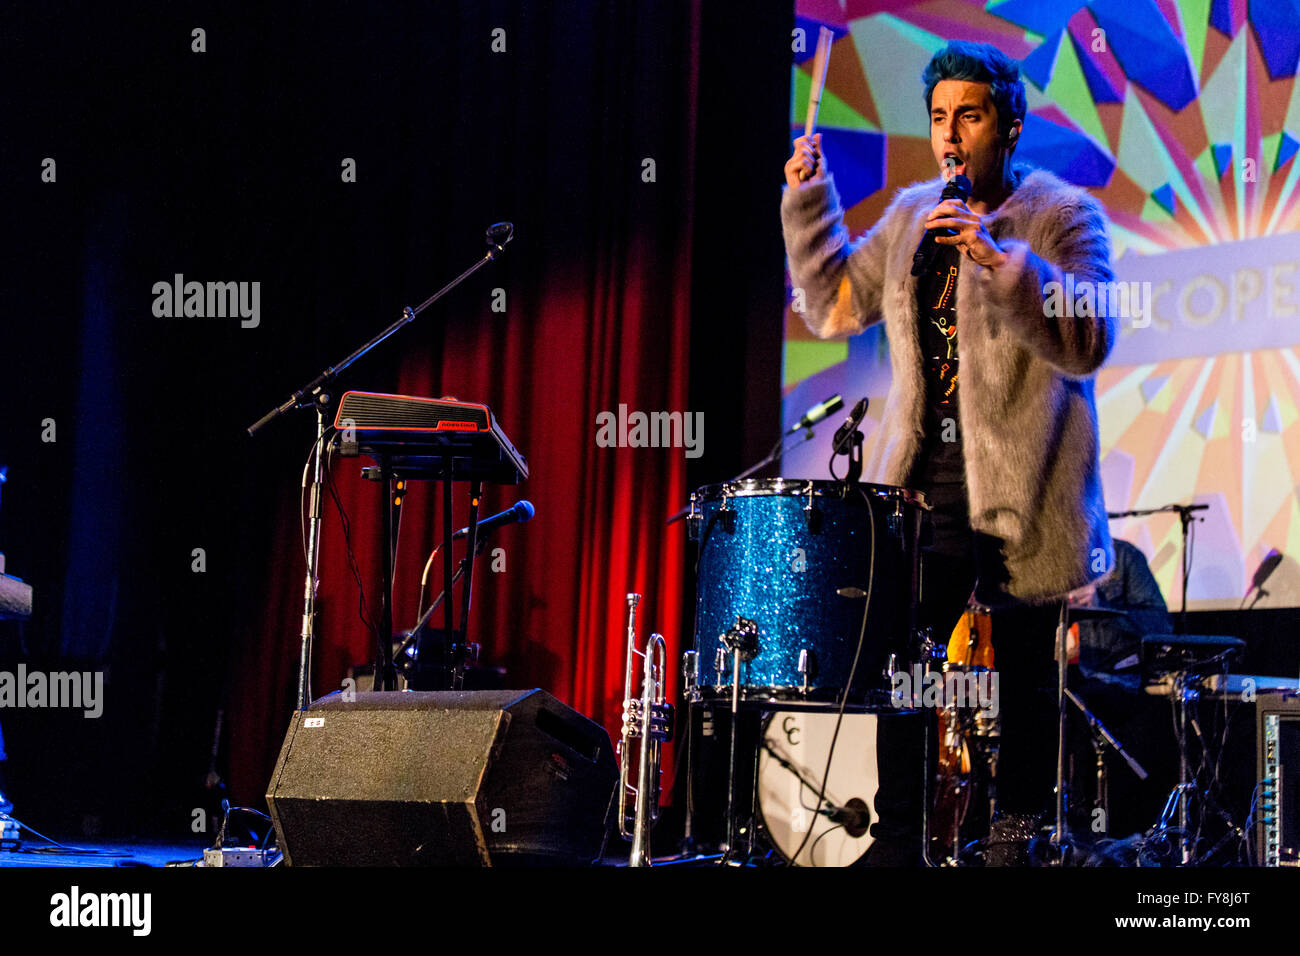 Chad King of A Great Big World @ The Rio Theatre in Vancouver, BC on March 24th 2016 - Stock Image